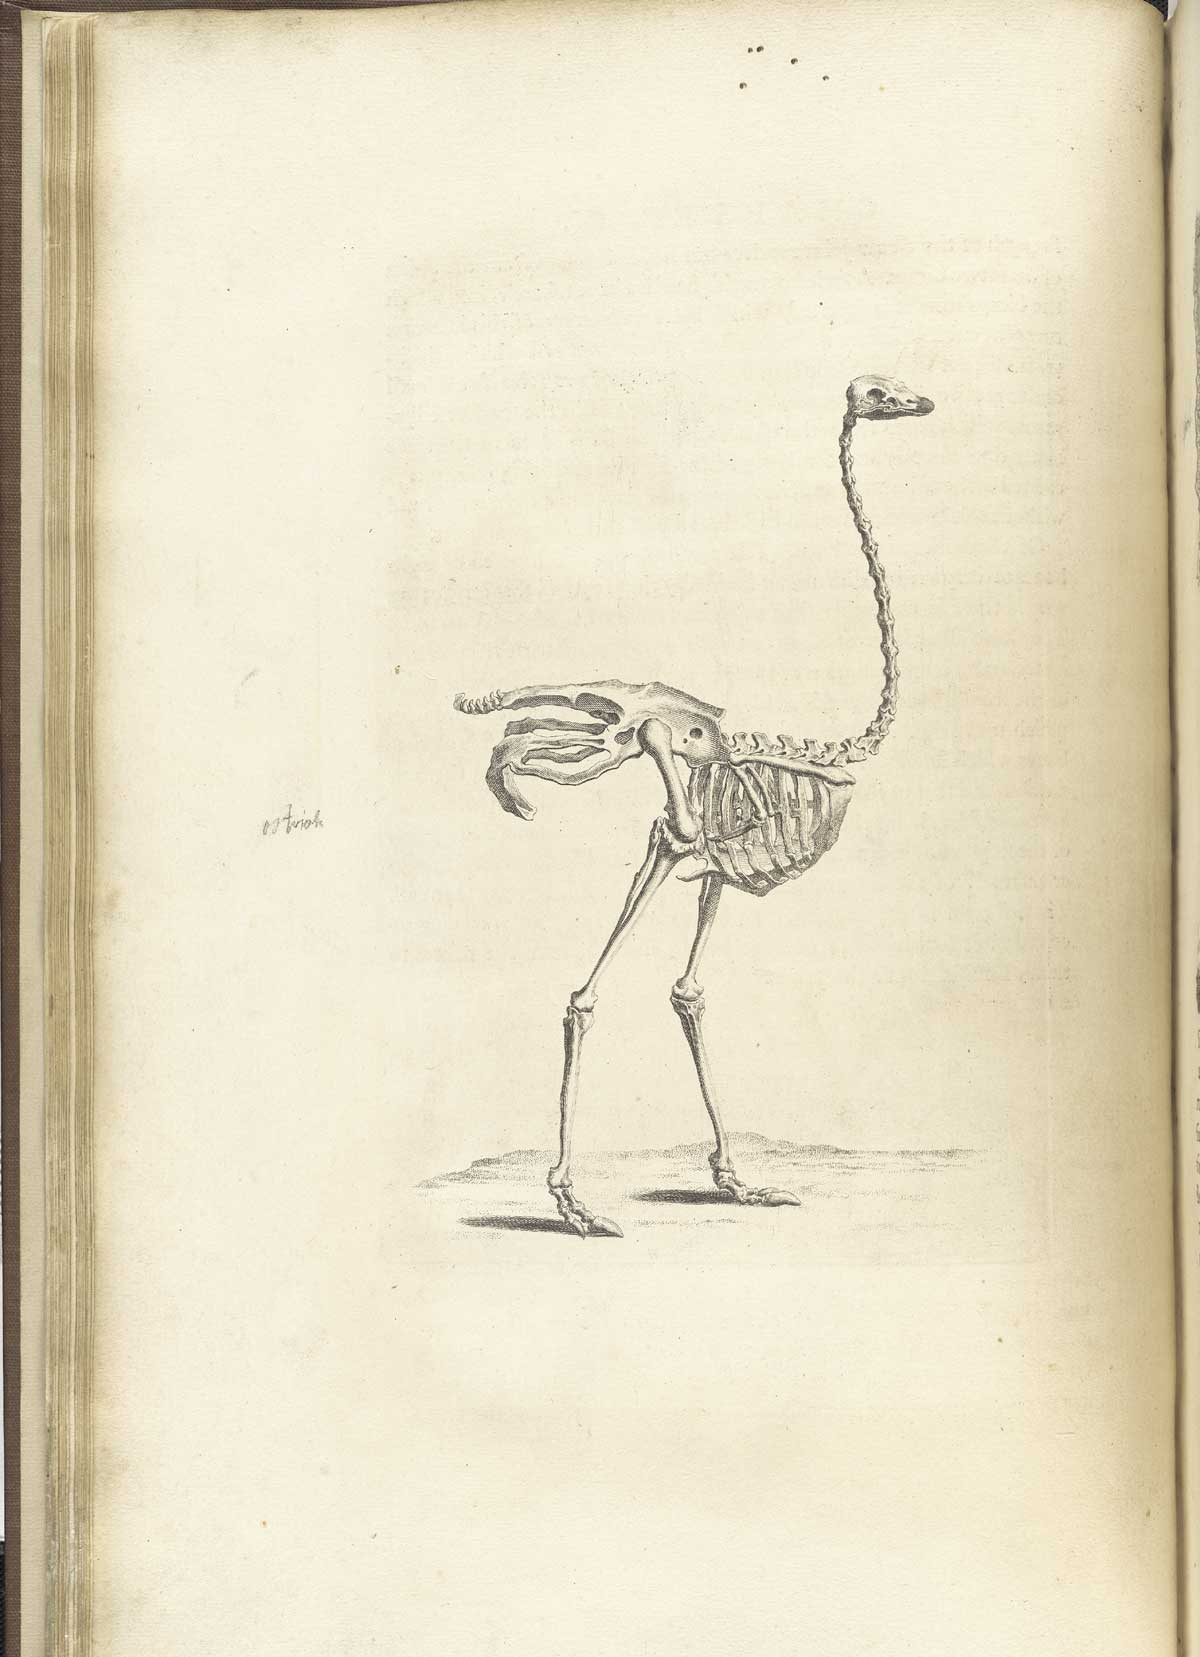 ostrich skeleton, from william cheselden's osteographia, nlm call no : wz  260 c499o